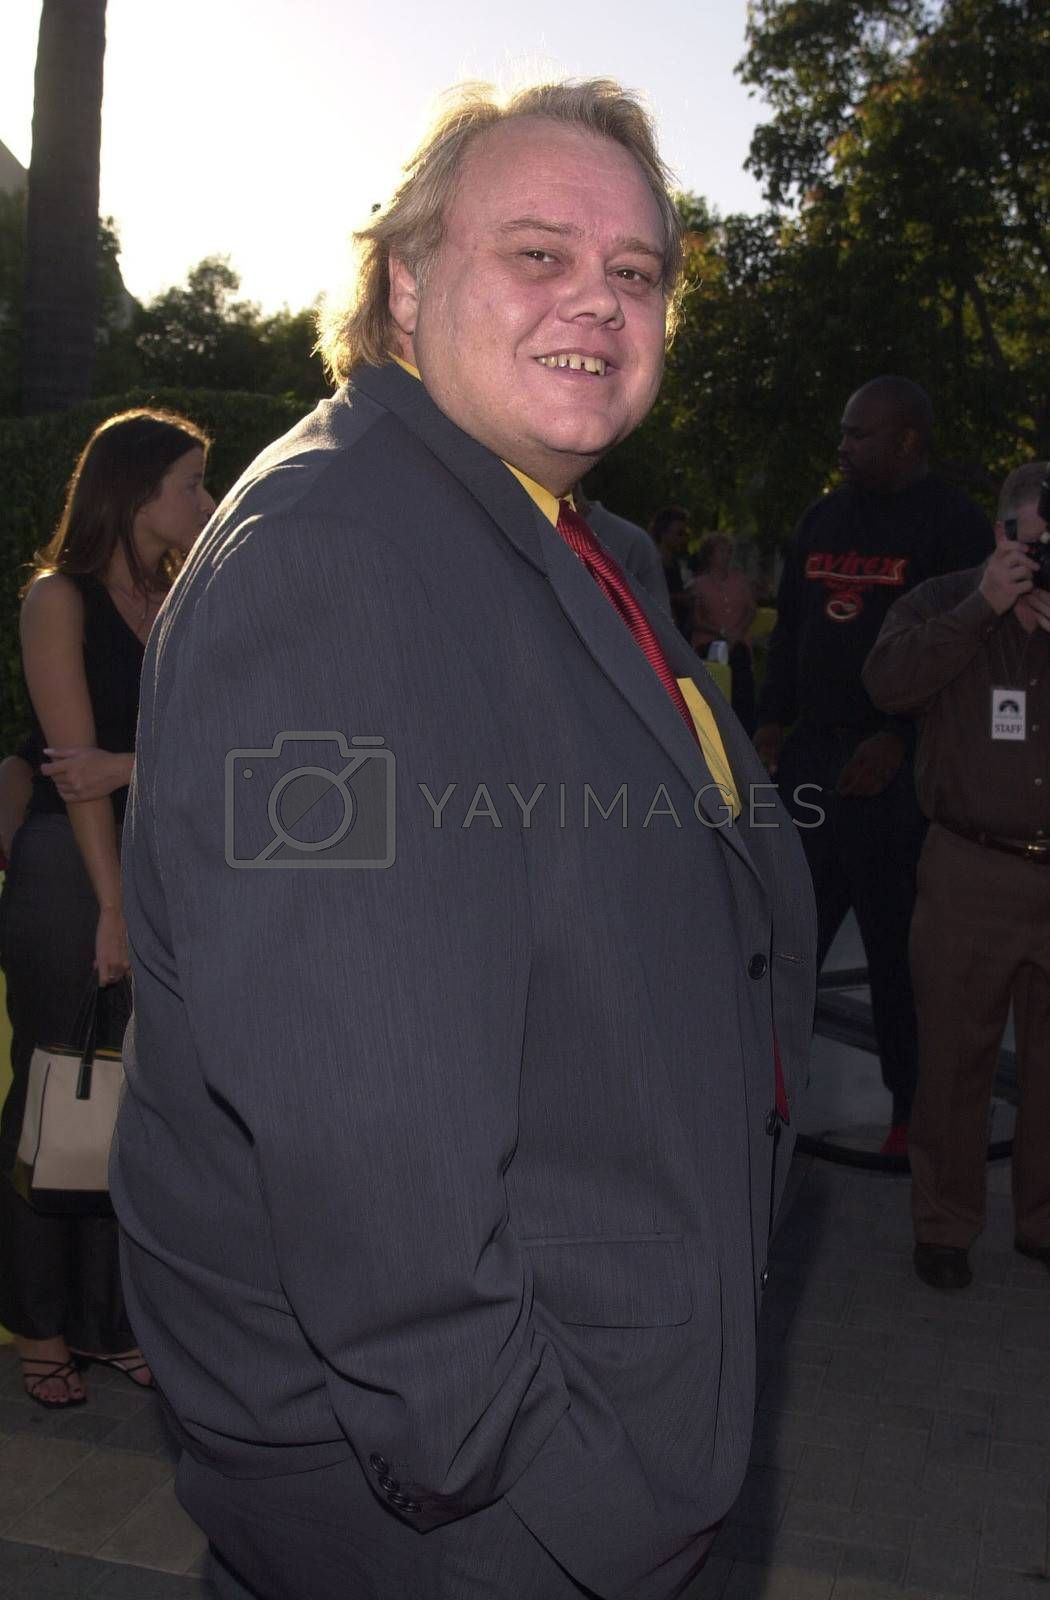 """Louie Anderson at the premiere of """"Original Kings of Comedy"""" in Hollywood. 08-10-00"""